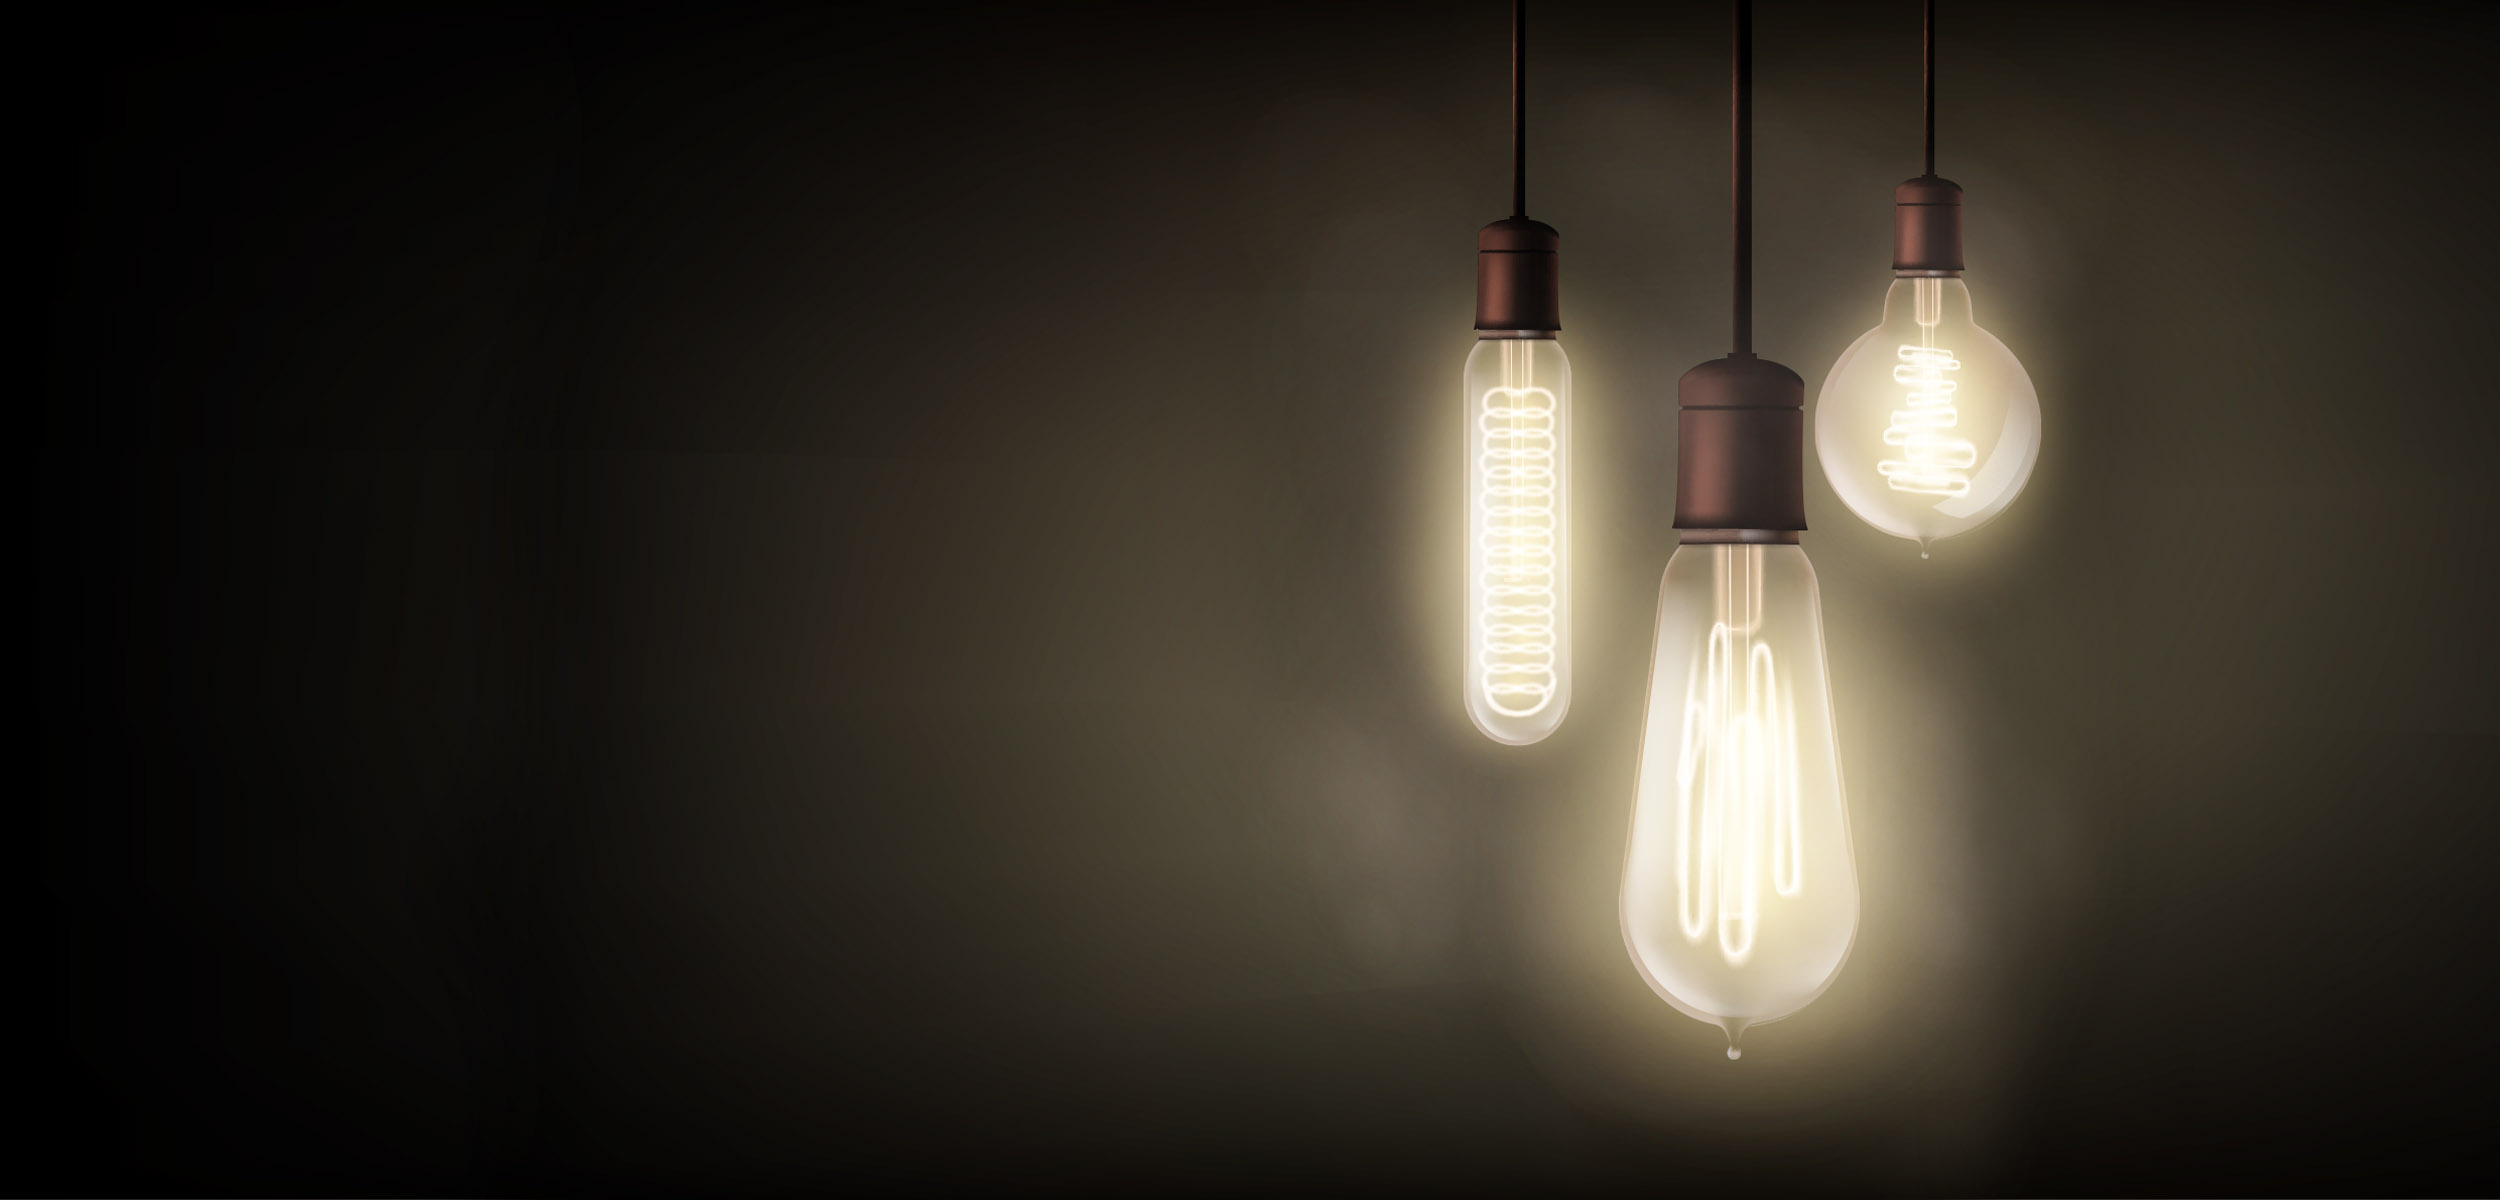 lightbulbs on a dark background